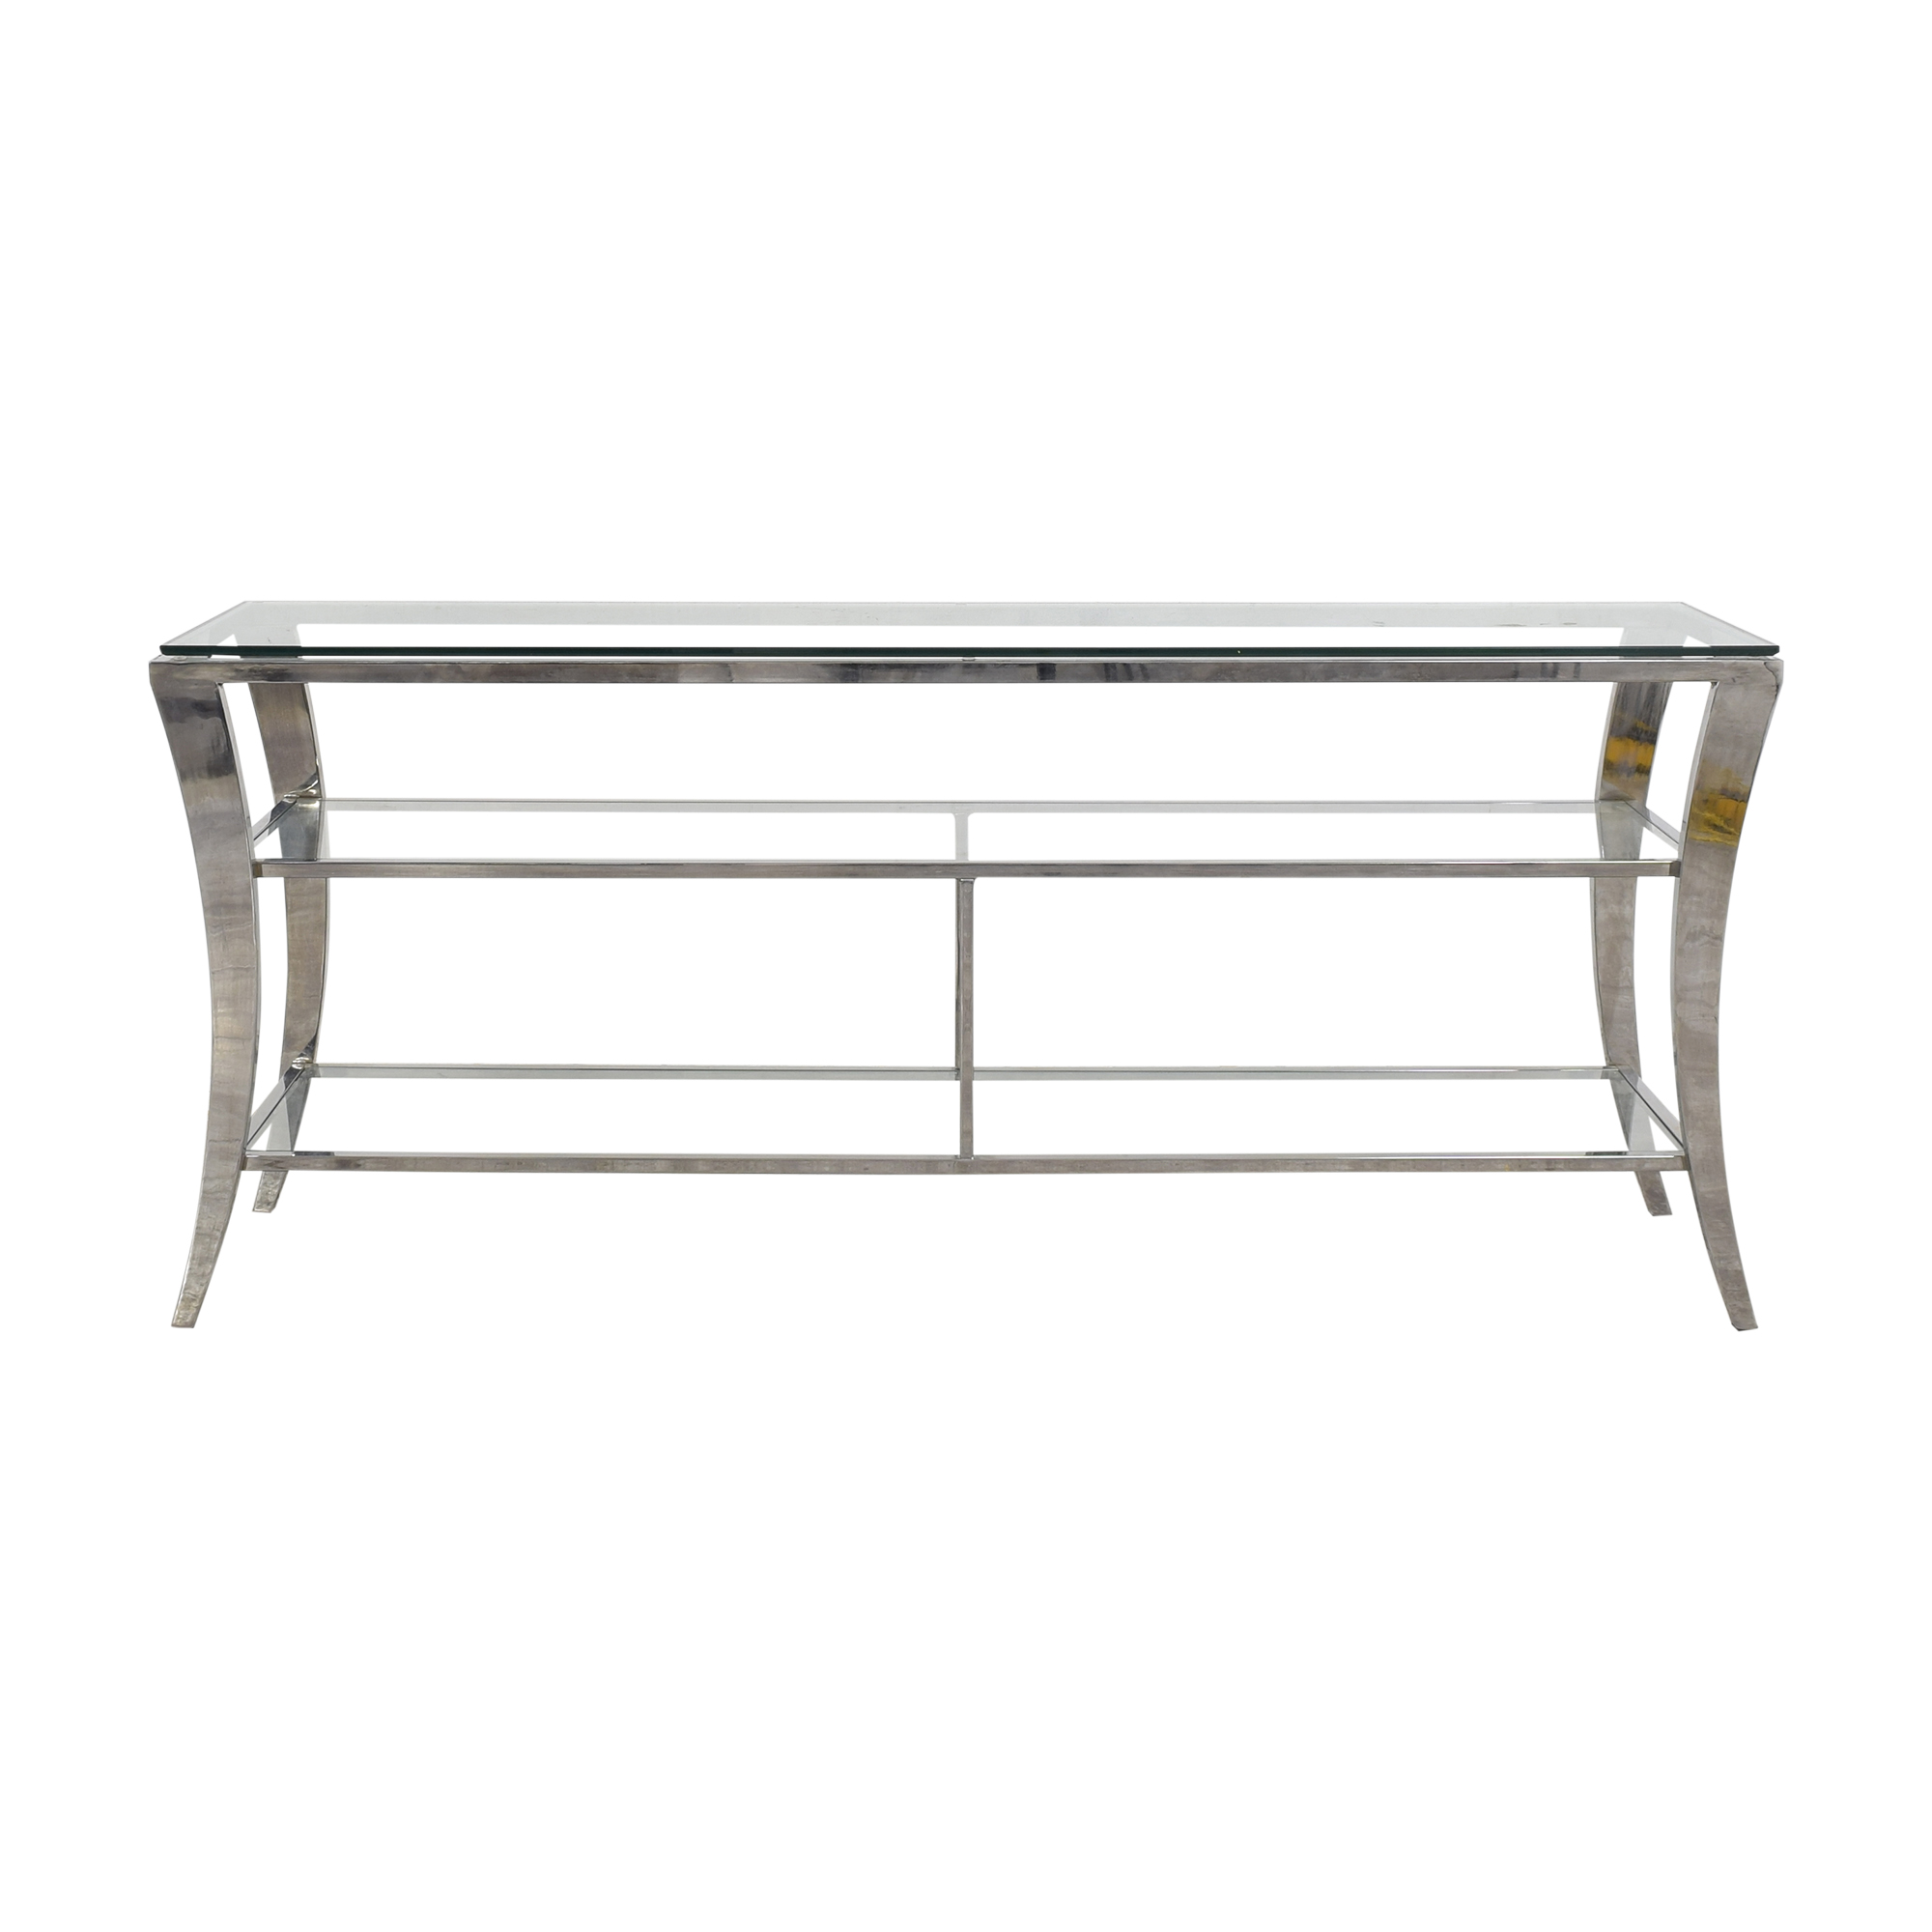 Design Institute America Design Institute America Console Table Tables